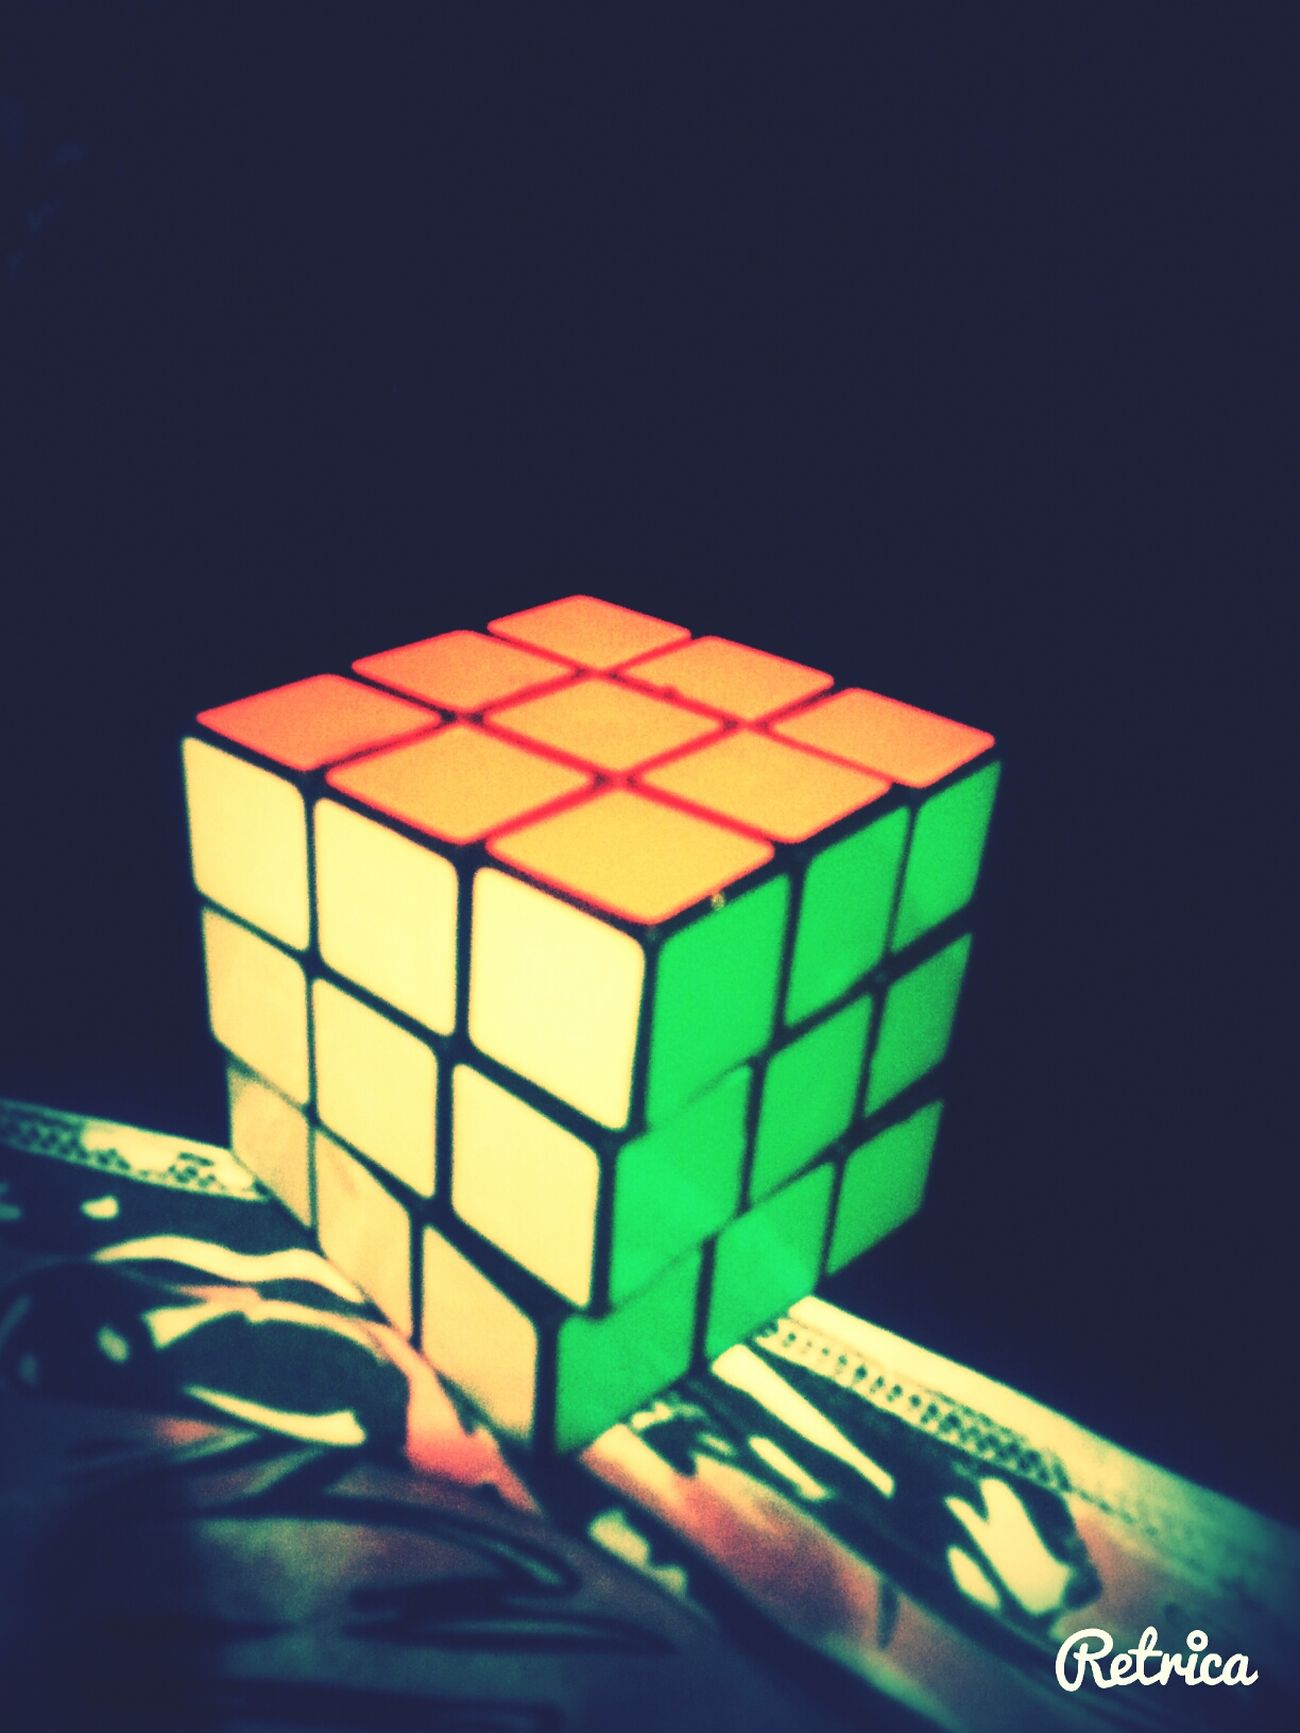 Playing Rubix Cube Enjoying Life Being Entertained